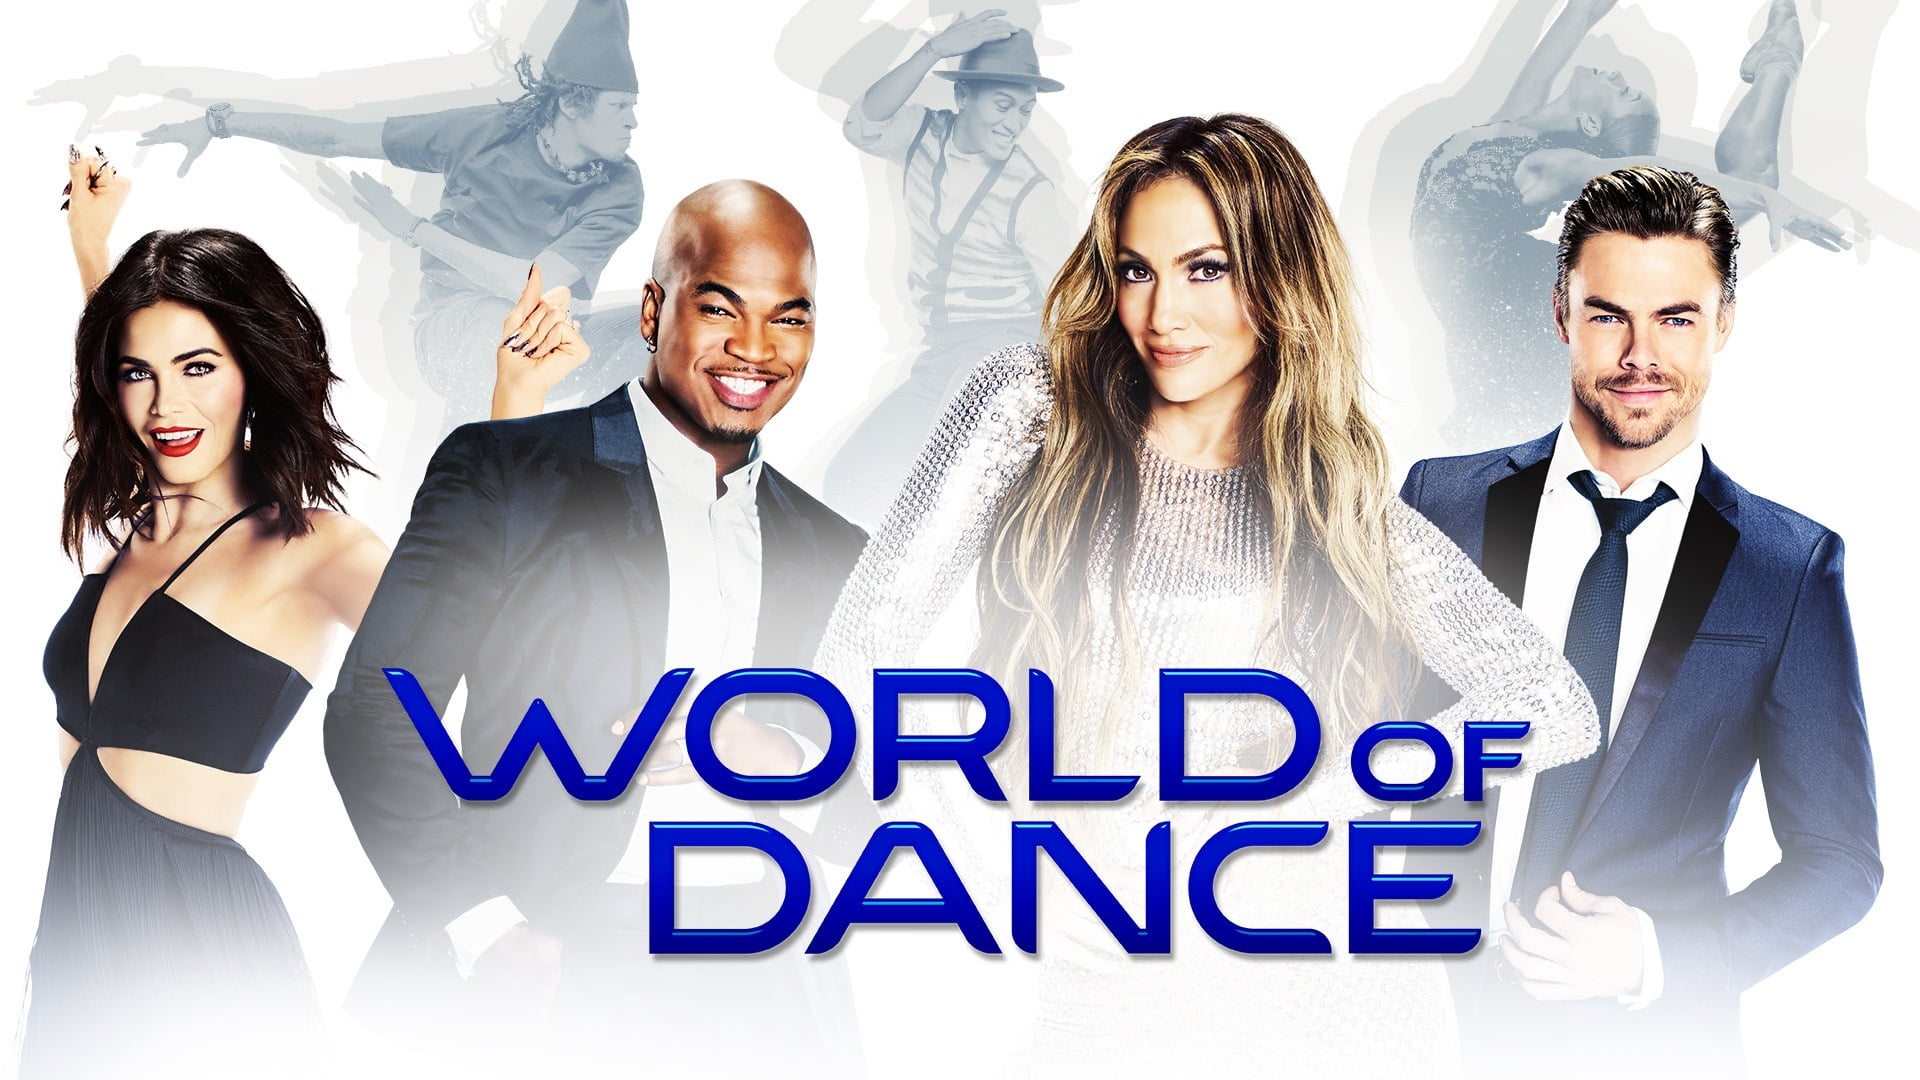 World of Dance - Season 4 Episode 2 : The Qualifiers 2